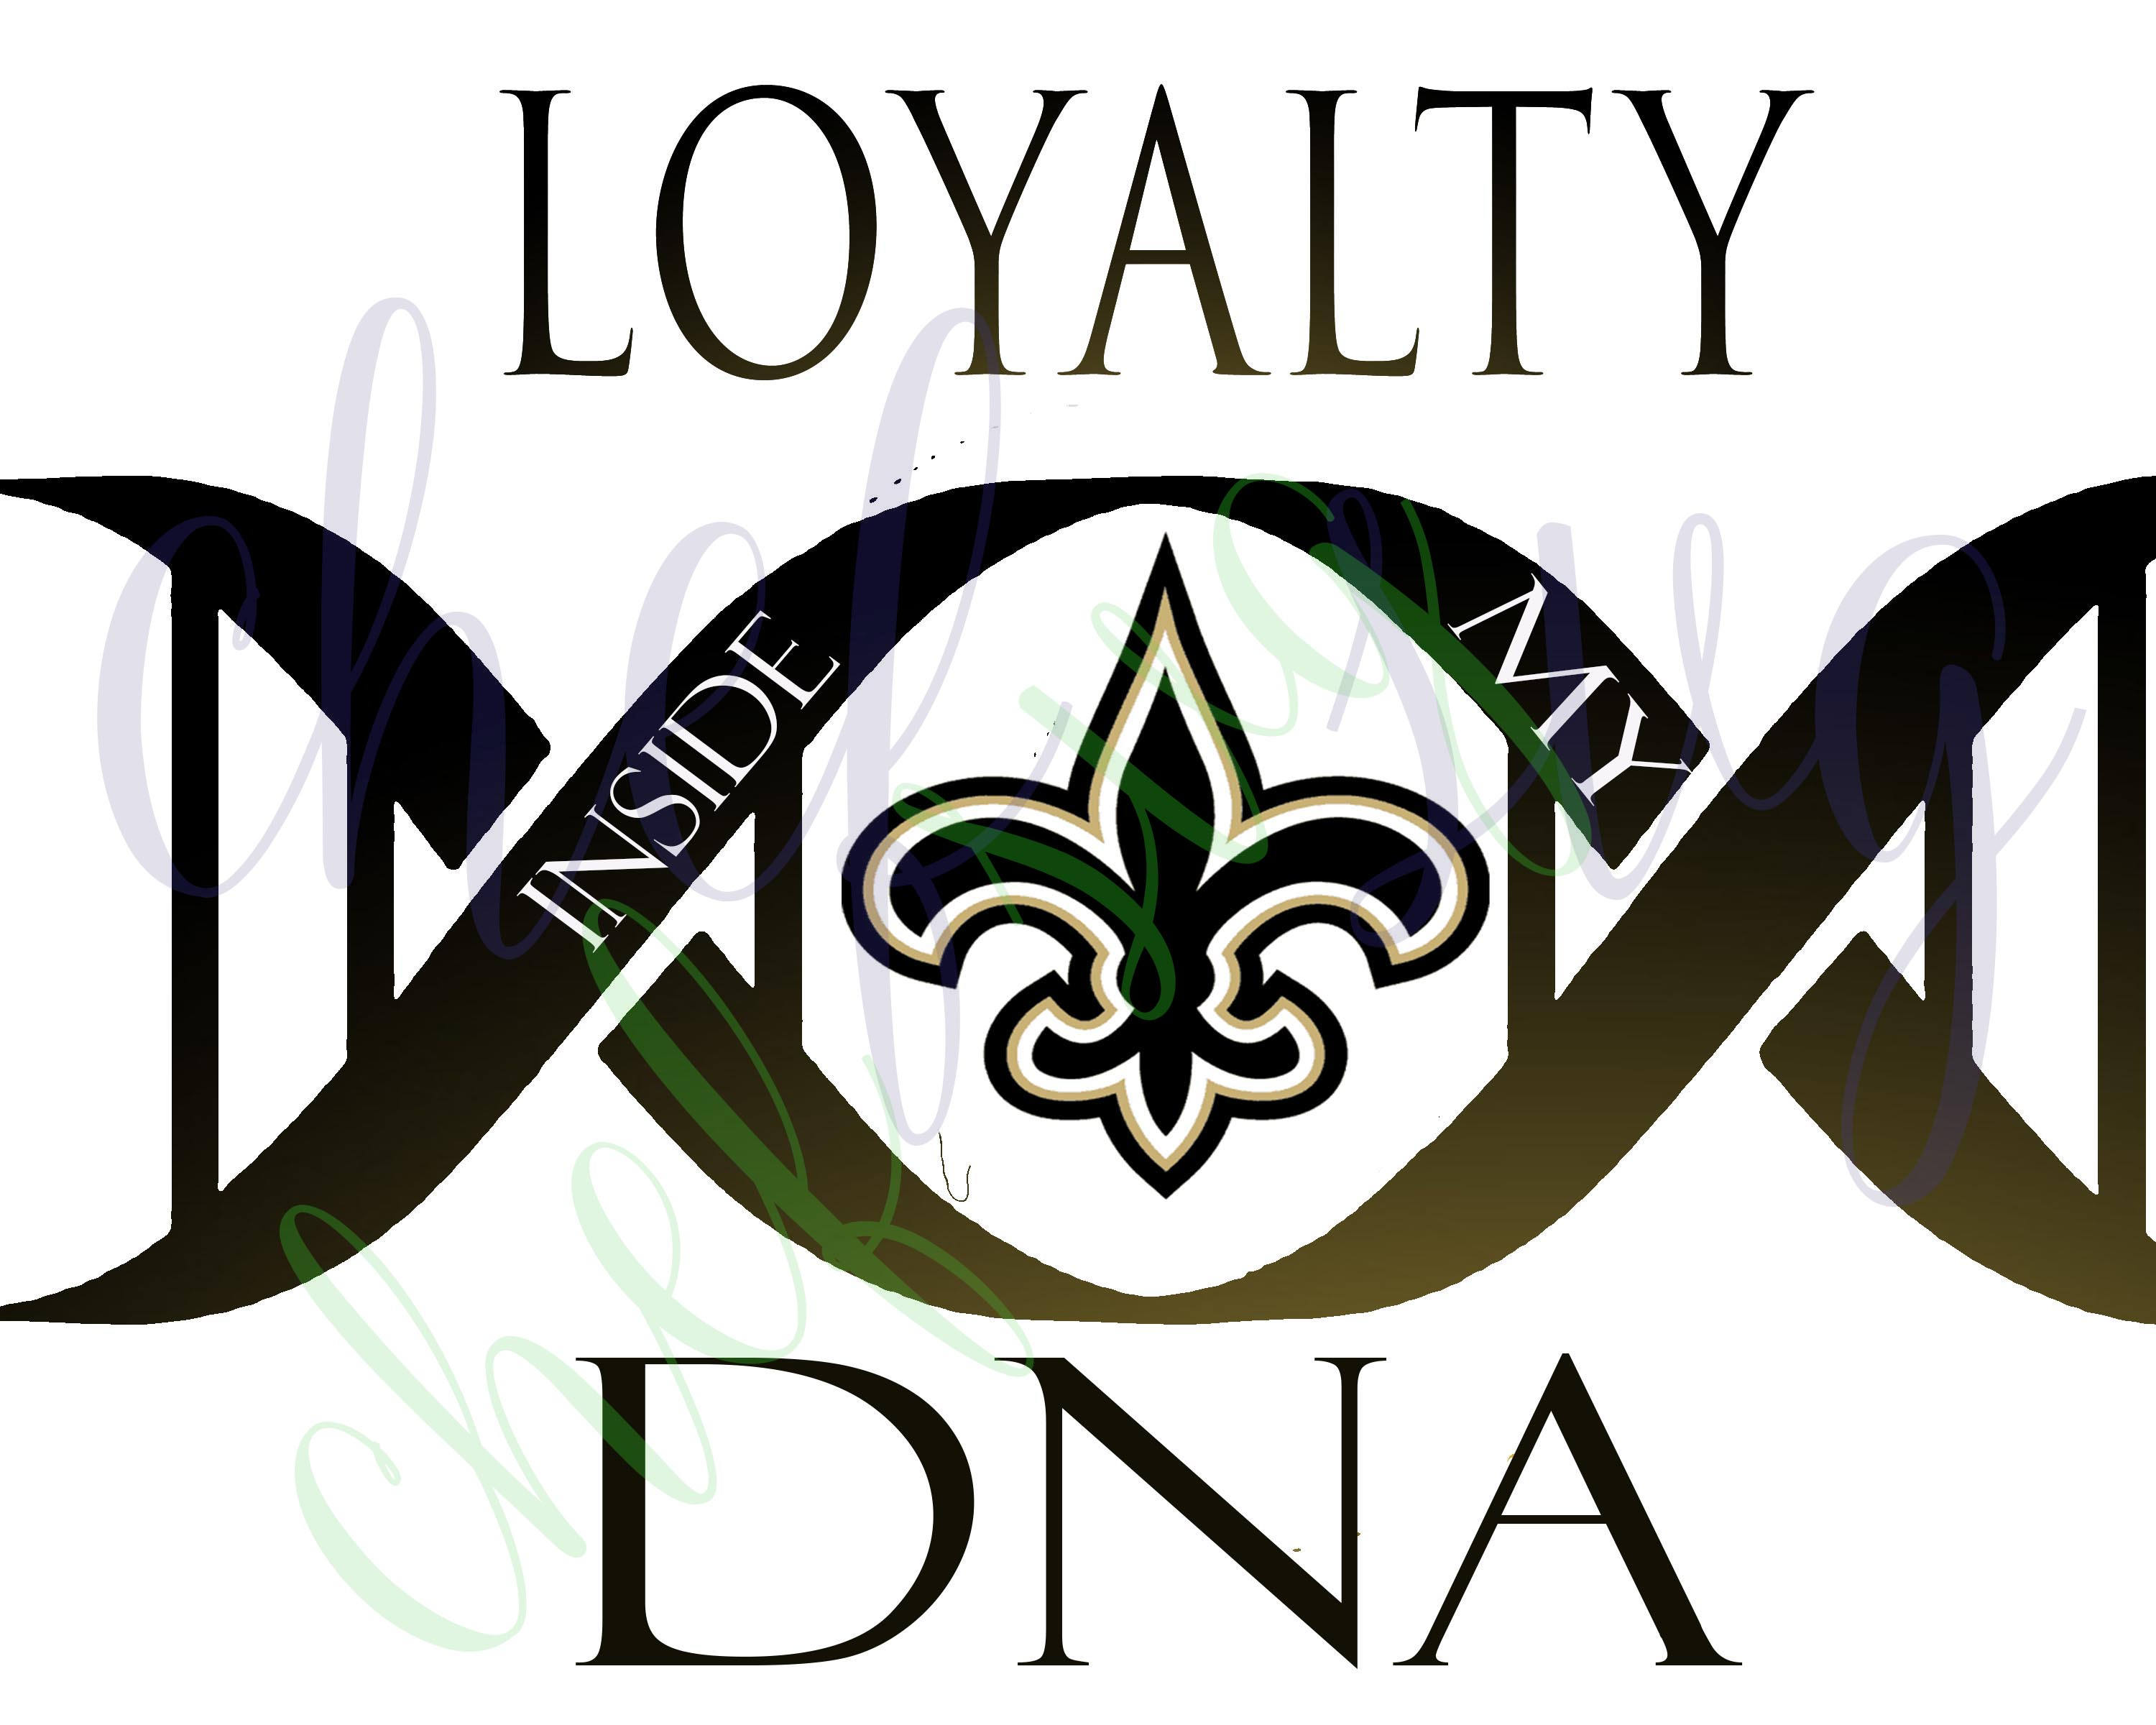 new orleans saints loyalty in my dna svg quote quote overlay rh etsy com new orleans saints emblem clip art New Orleans Saints Who Dat